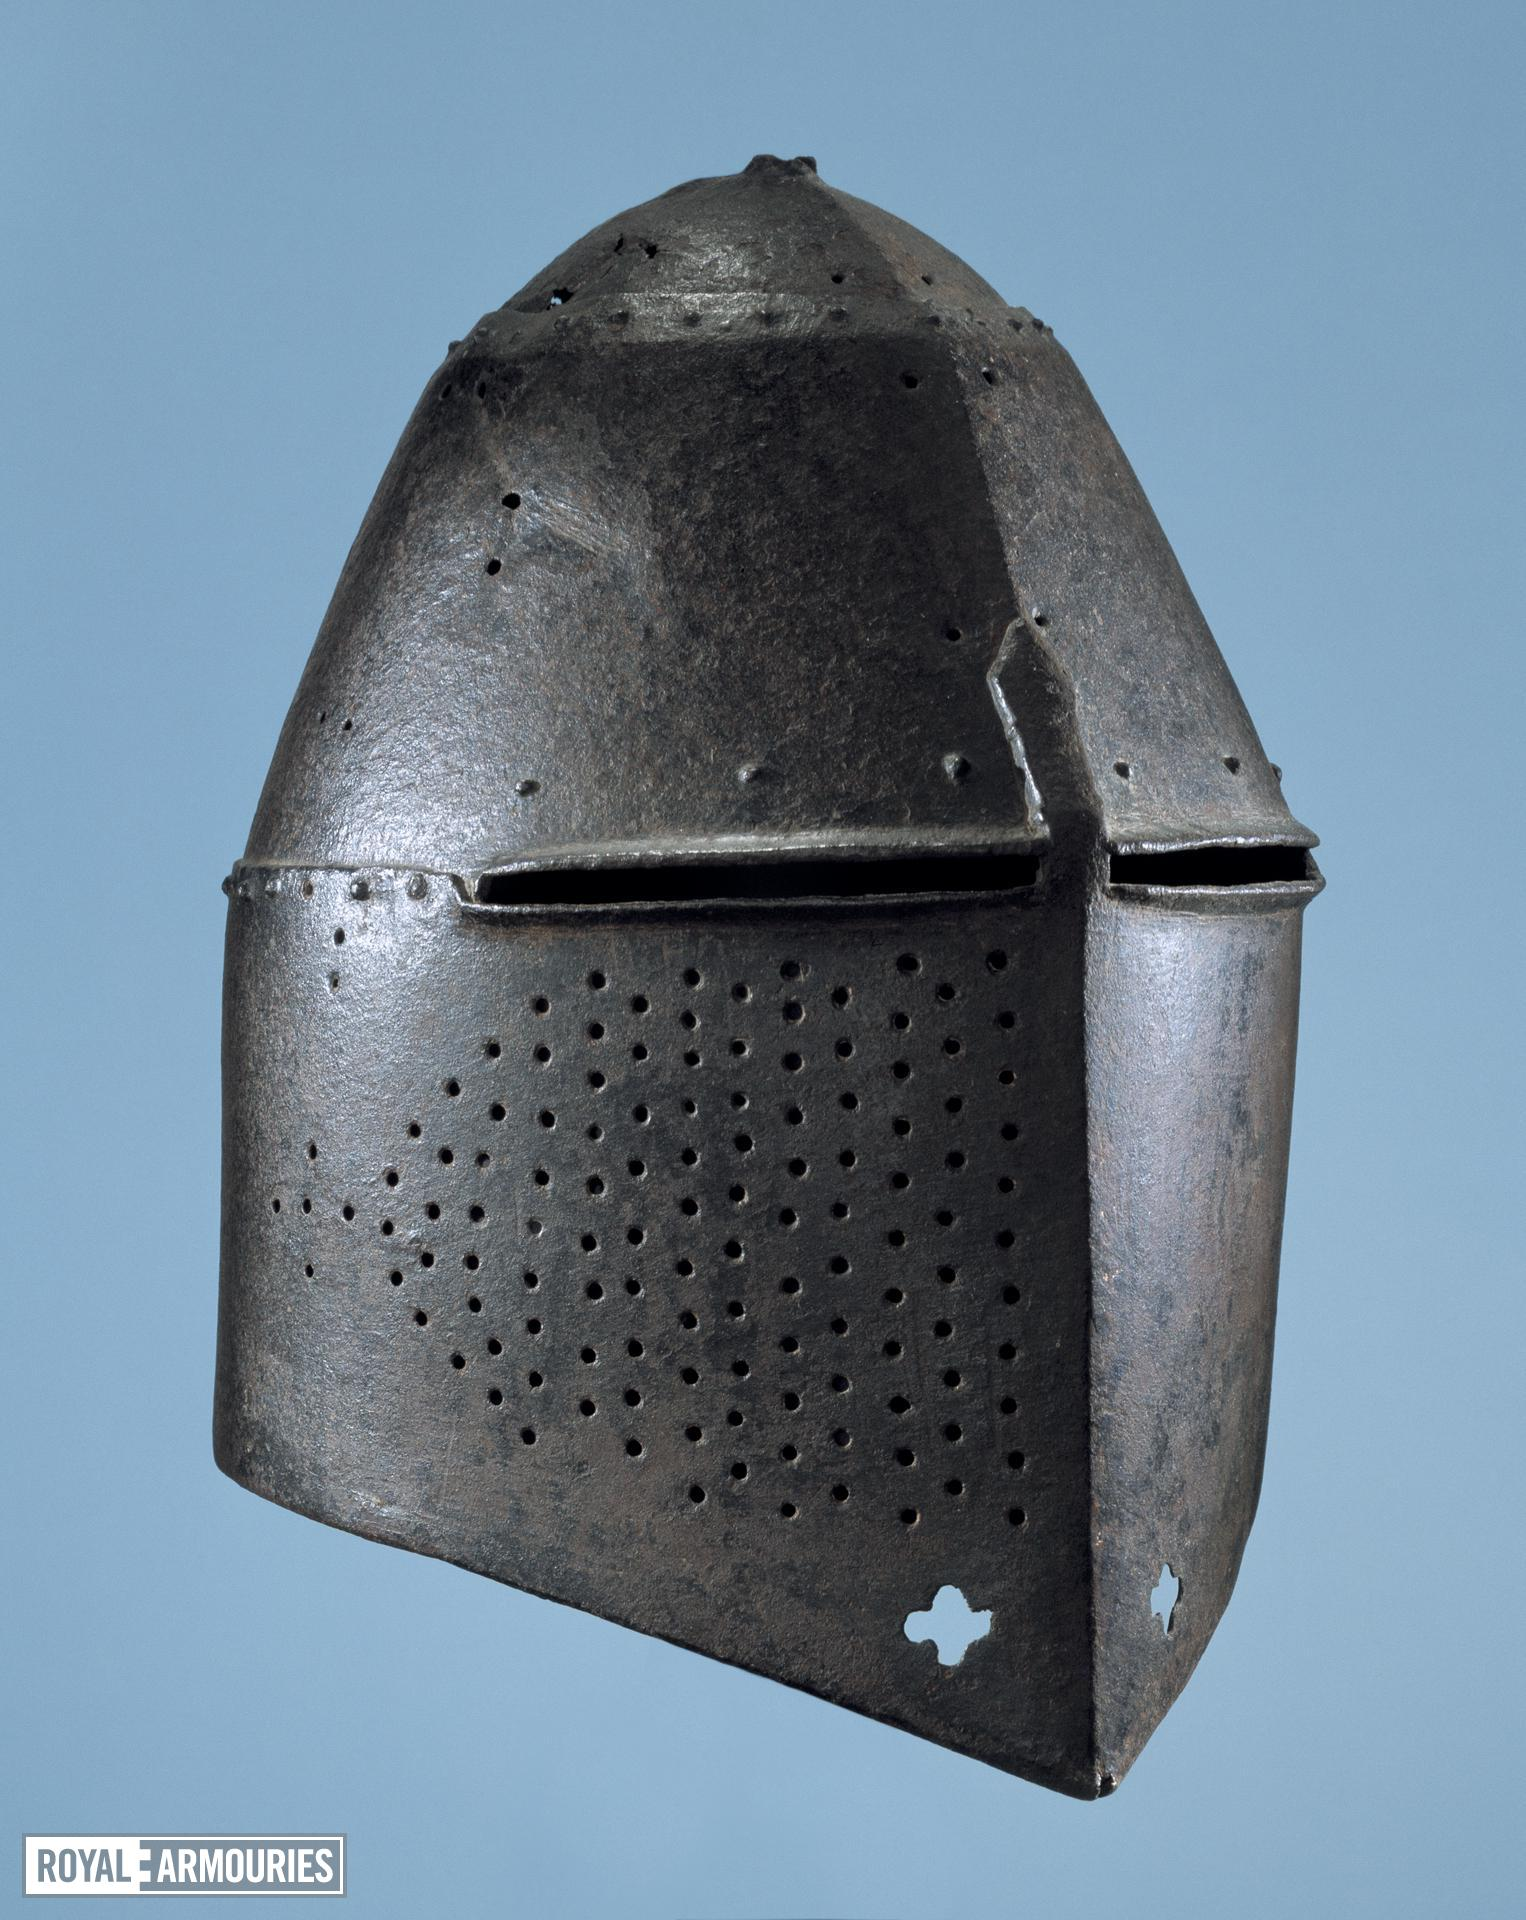 Helm - Great Helm (1331-1370) - Royal Armouries collections